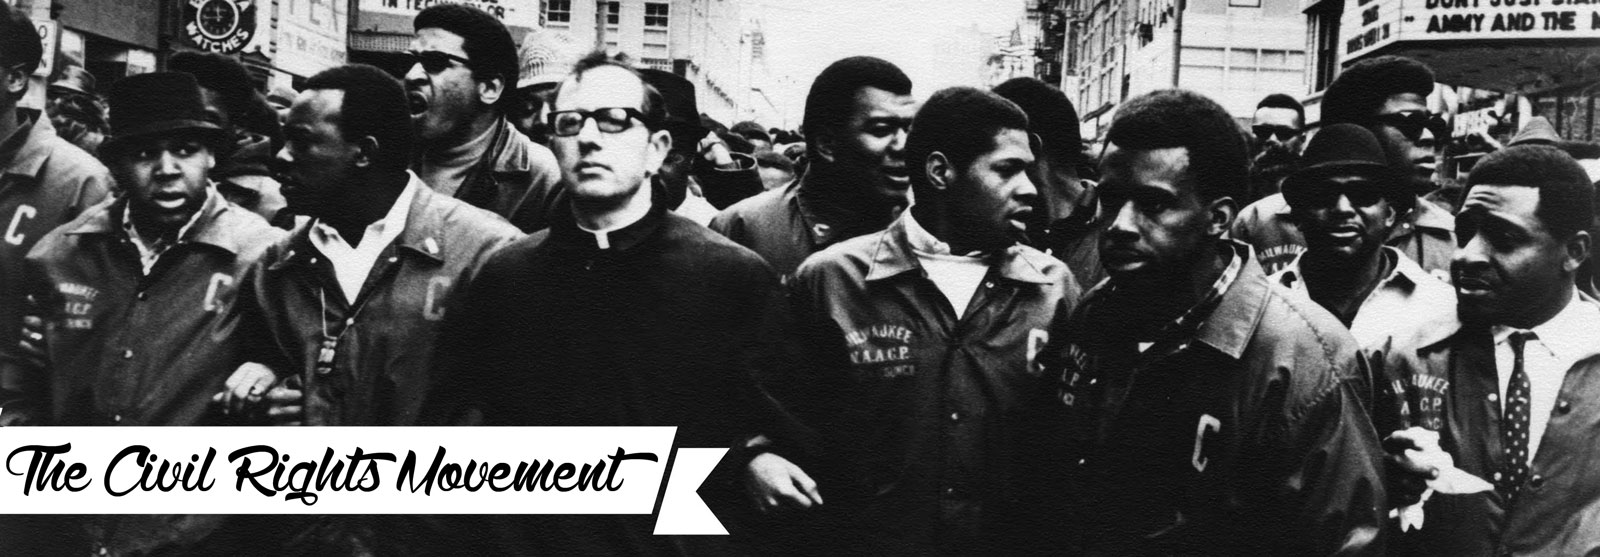 early civil rights movement essay The civil rights movement questions and answers - discover the enotescom community of teachers, mentors and students just like you that can answer any question you might have on the civil rights .